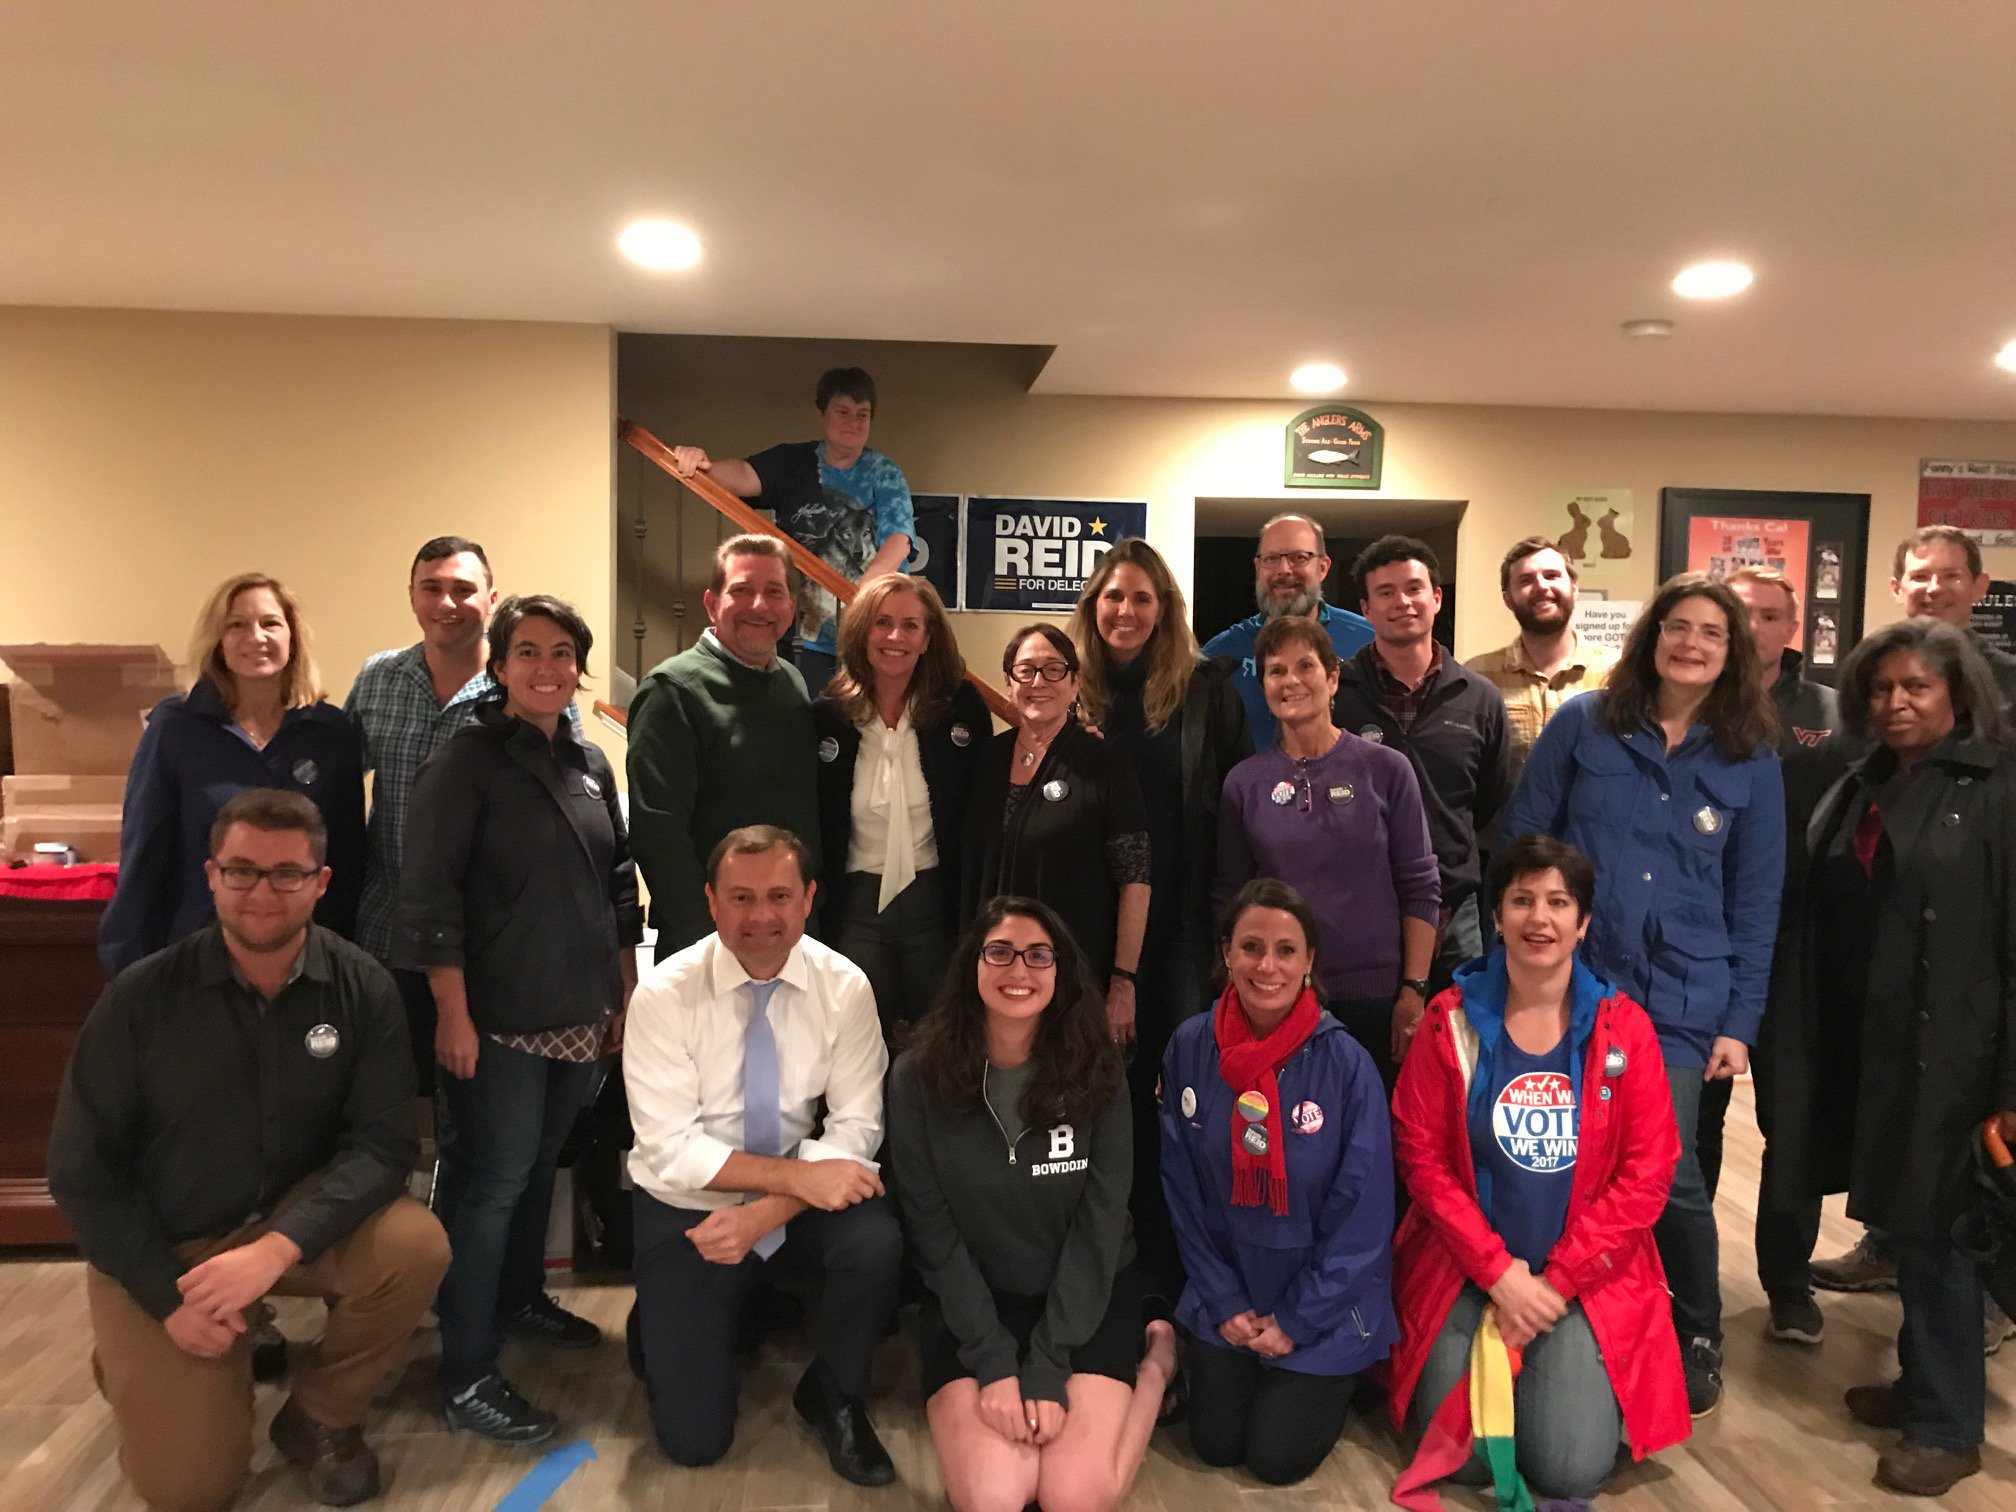 Loudoun County is fired up for @DavidReidVA! Great to kick off a canvass for David yesterday with @DSMcAuliffe. https://t.co/kgXTS1zFRY